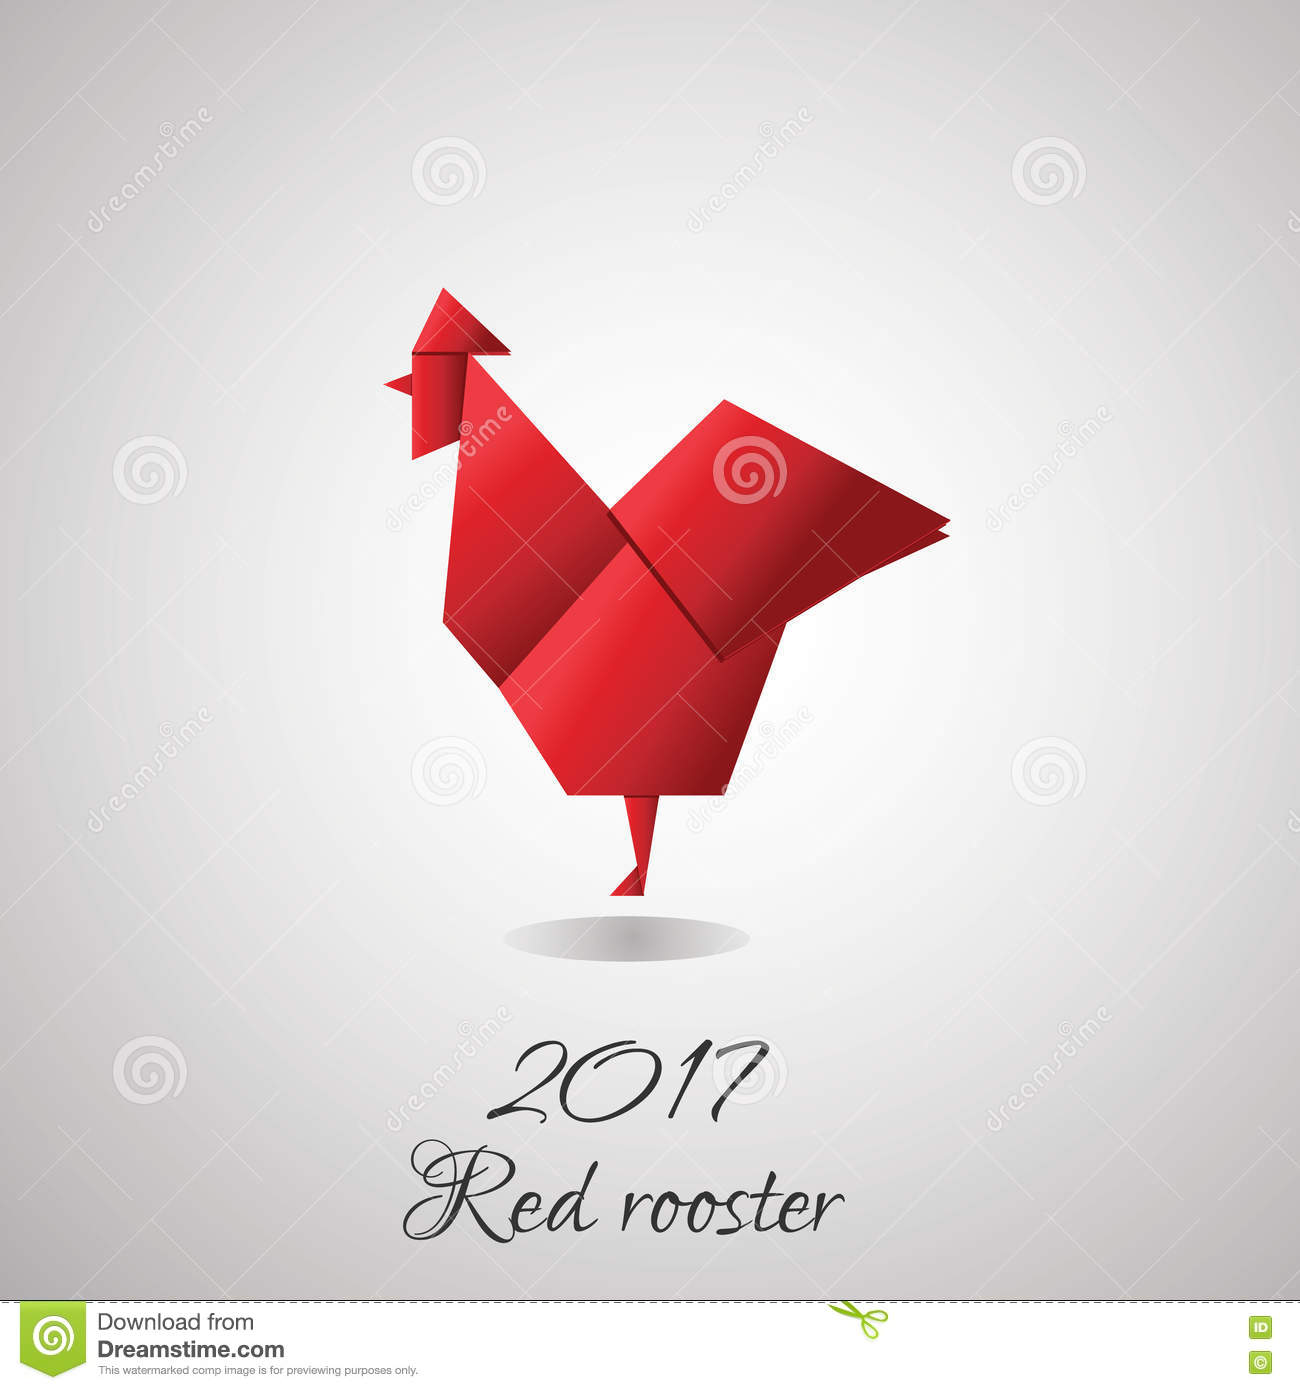 Red Rooster Cartoon - Bing images